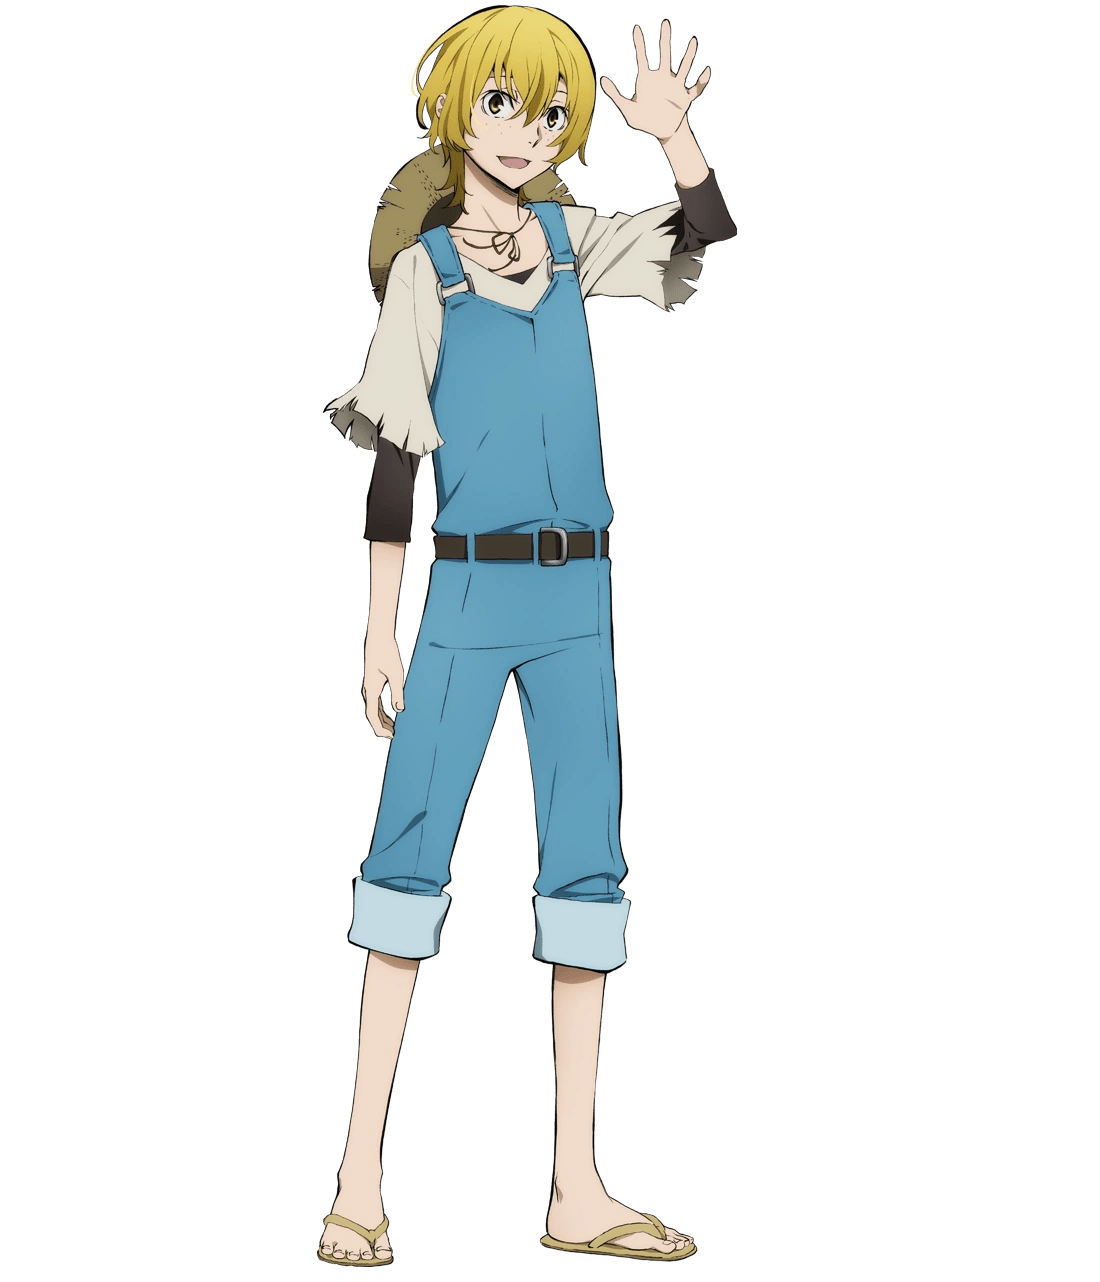 20+ Phoenix Quirk My Hero Academia Pictures and Ideas on Meta Networks